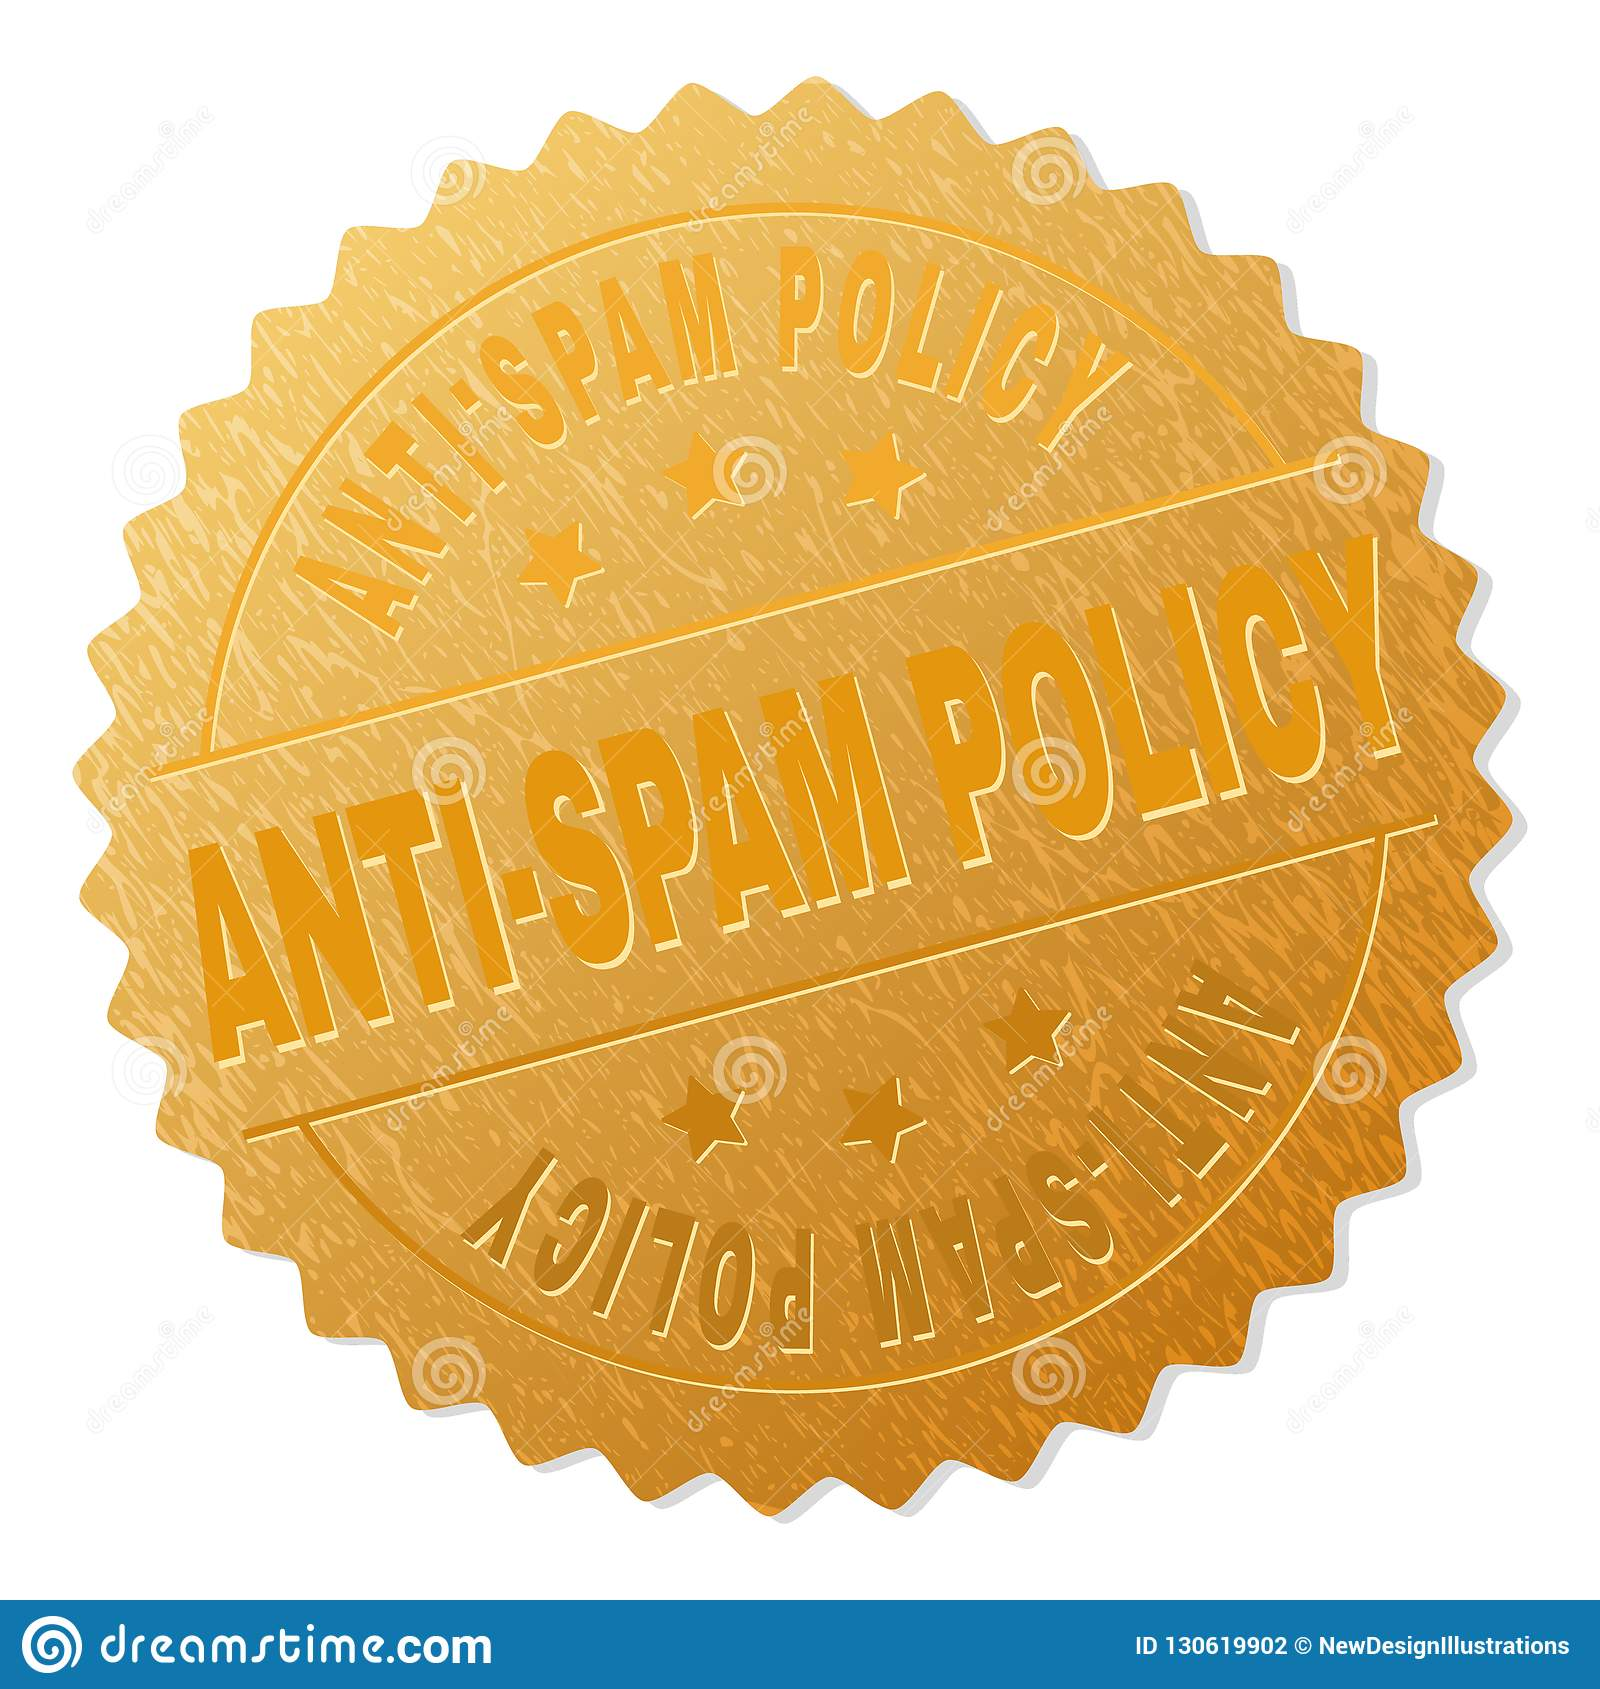 Gold ANTI-SPAM POLICY Medal Stamp Stock Vector